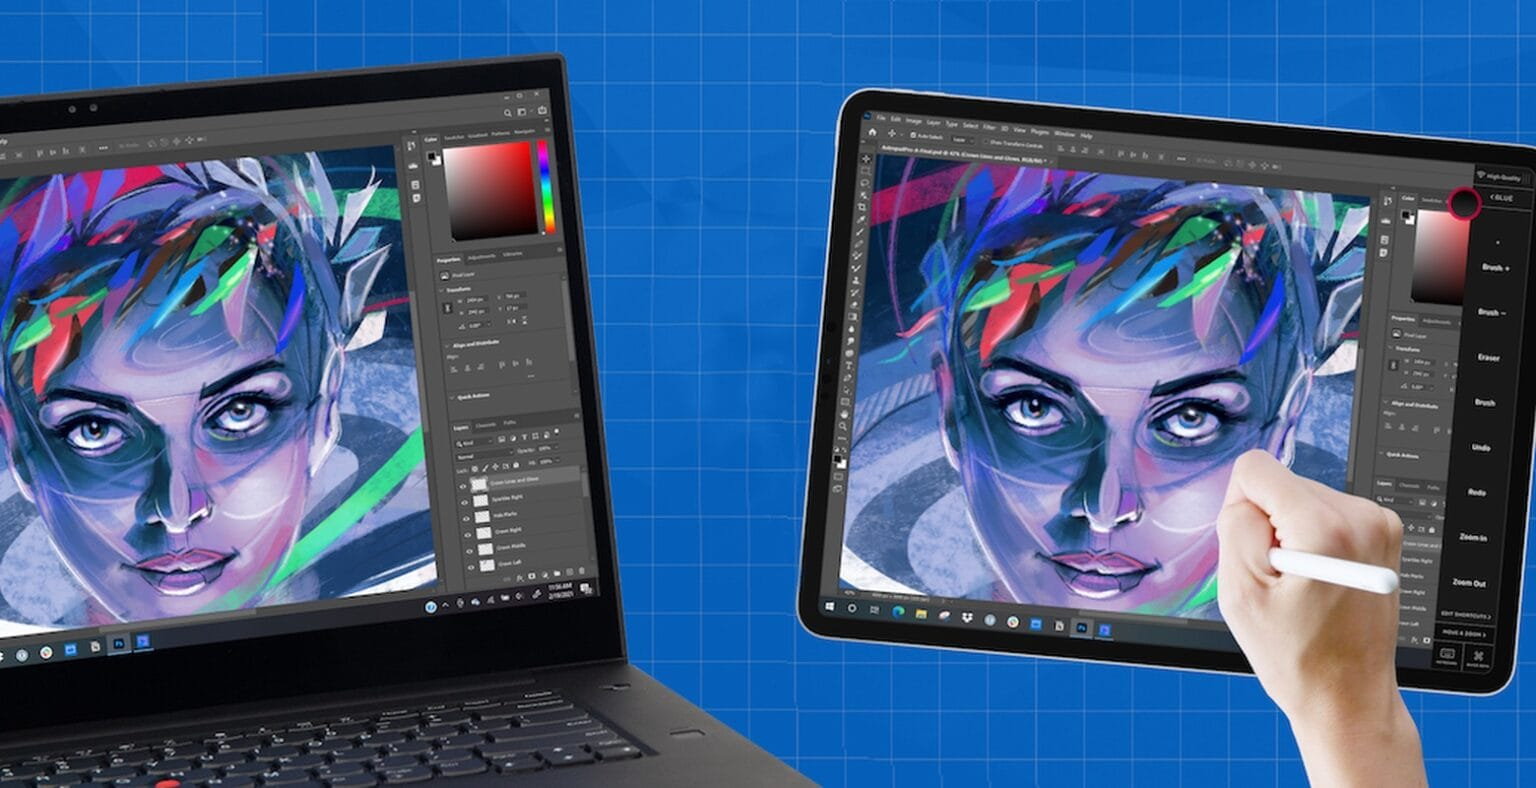 Astropad Studio on Windows lets your iPad become a drawing pad for Windows apps.